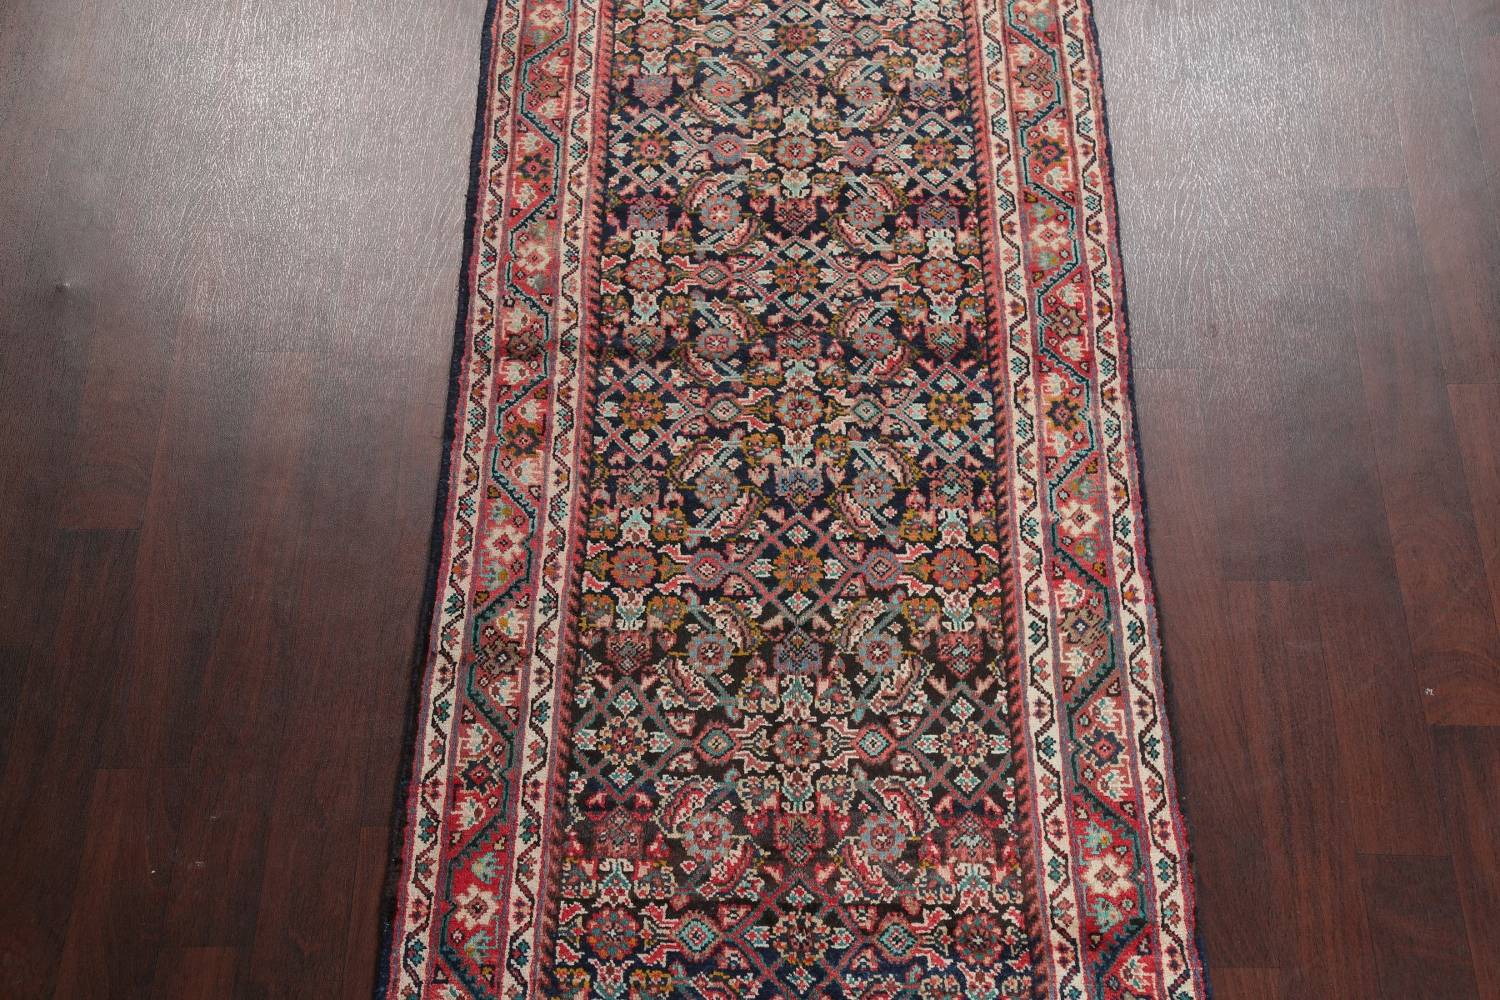 Antique Geometric Mahal Hamedan Persian Hand-Knotted 4x13 Runner Rug image 3